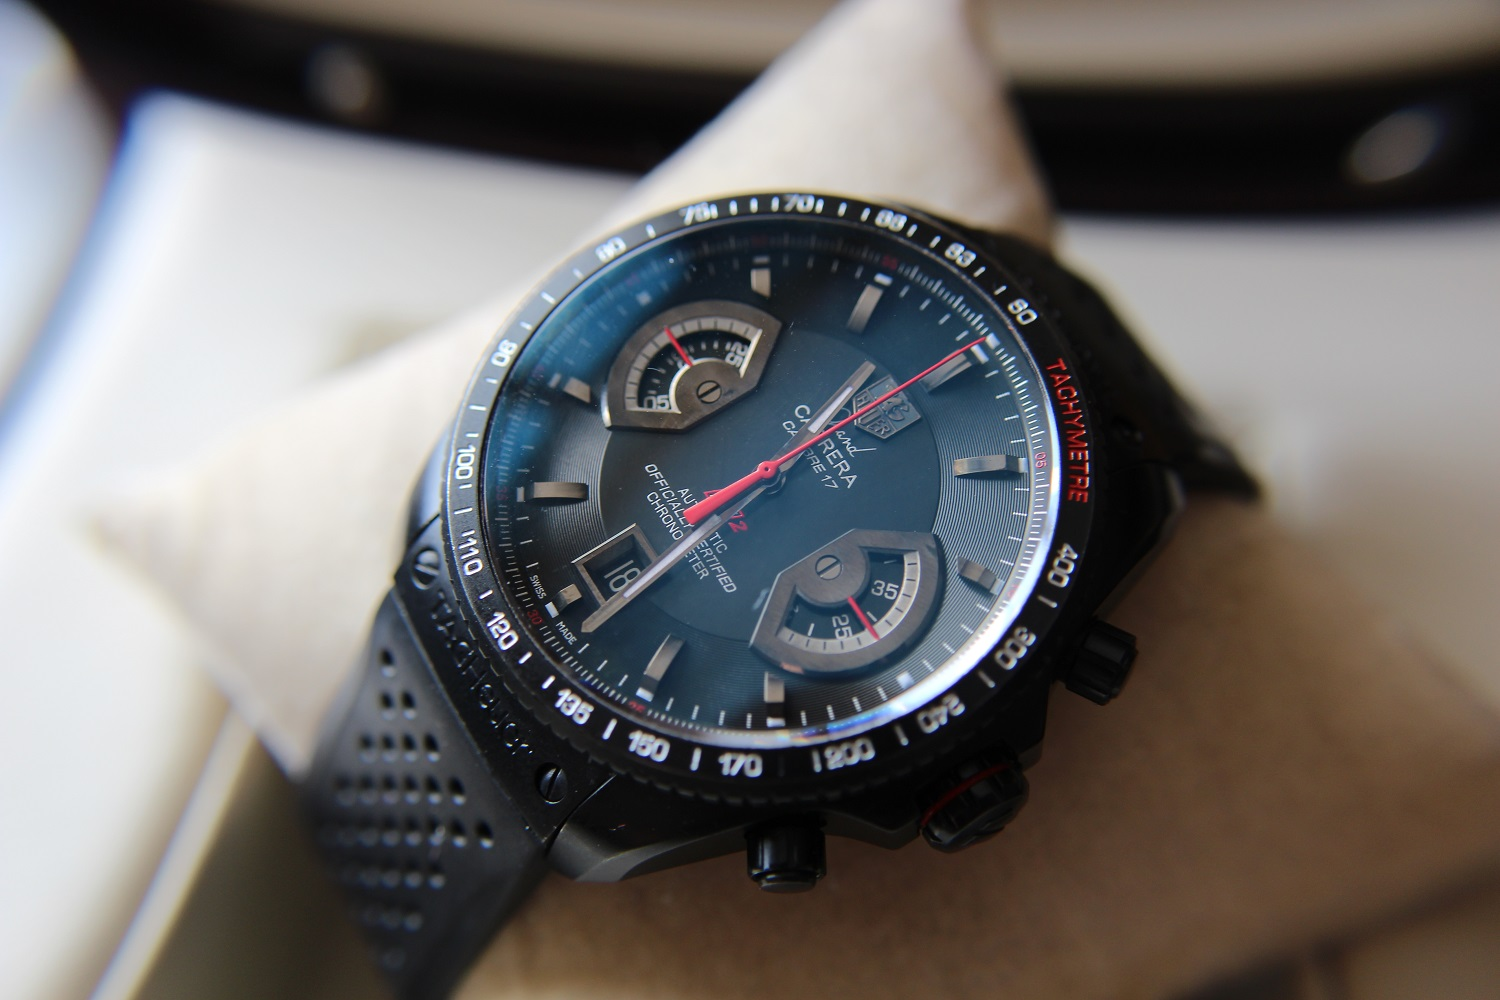 Tag heuer monaco automatic chronograph calibre 12 black dial 39 mm.